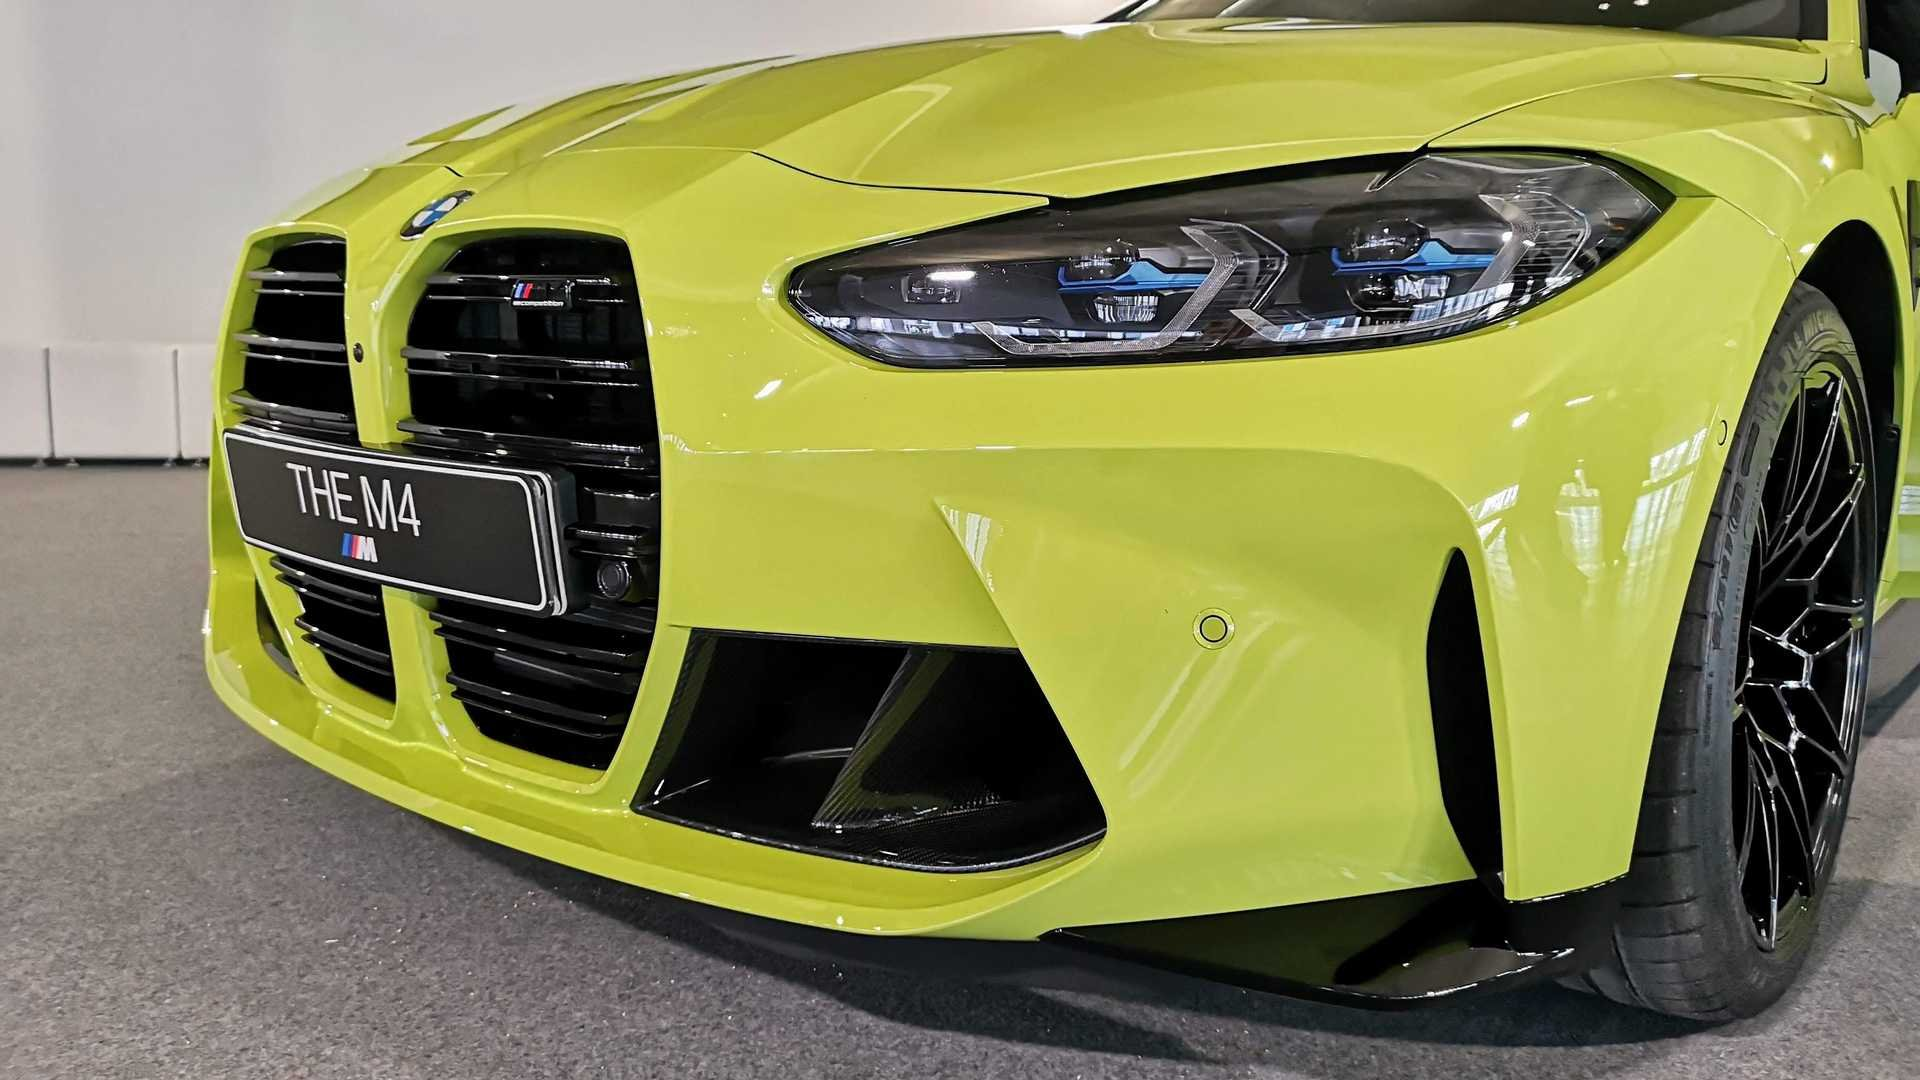 We've Seen BMW's New Grille In Person And Have The Photos To Prove It